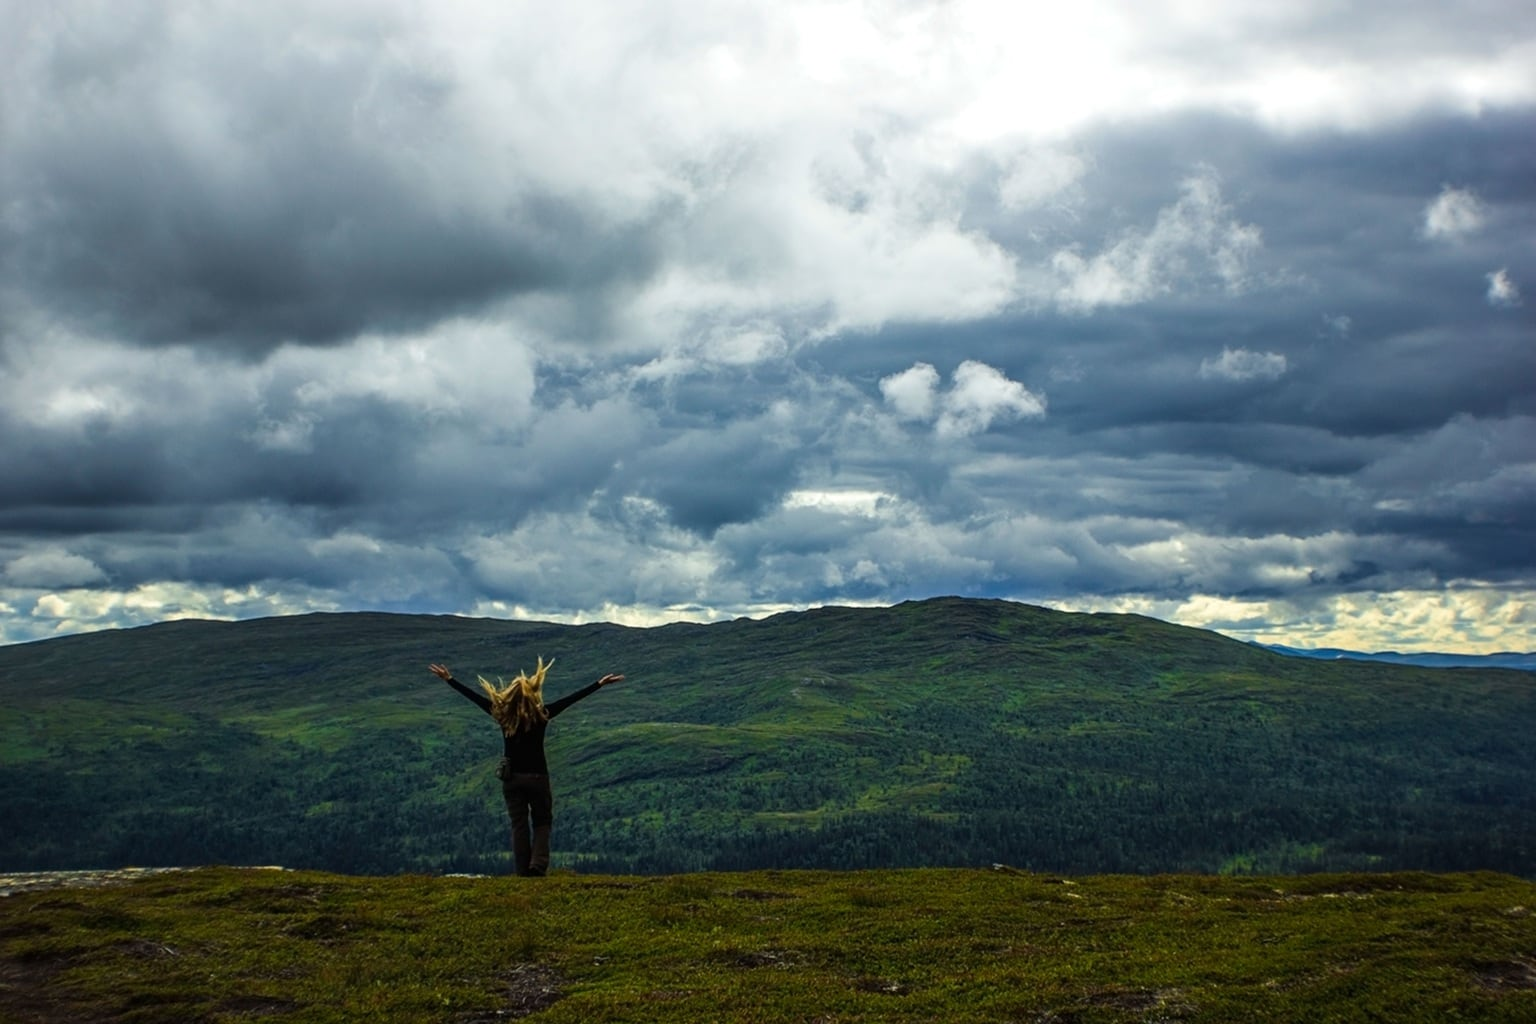 Woman on a hilltop with her arms outstretched under a cloudy sky